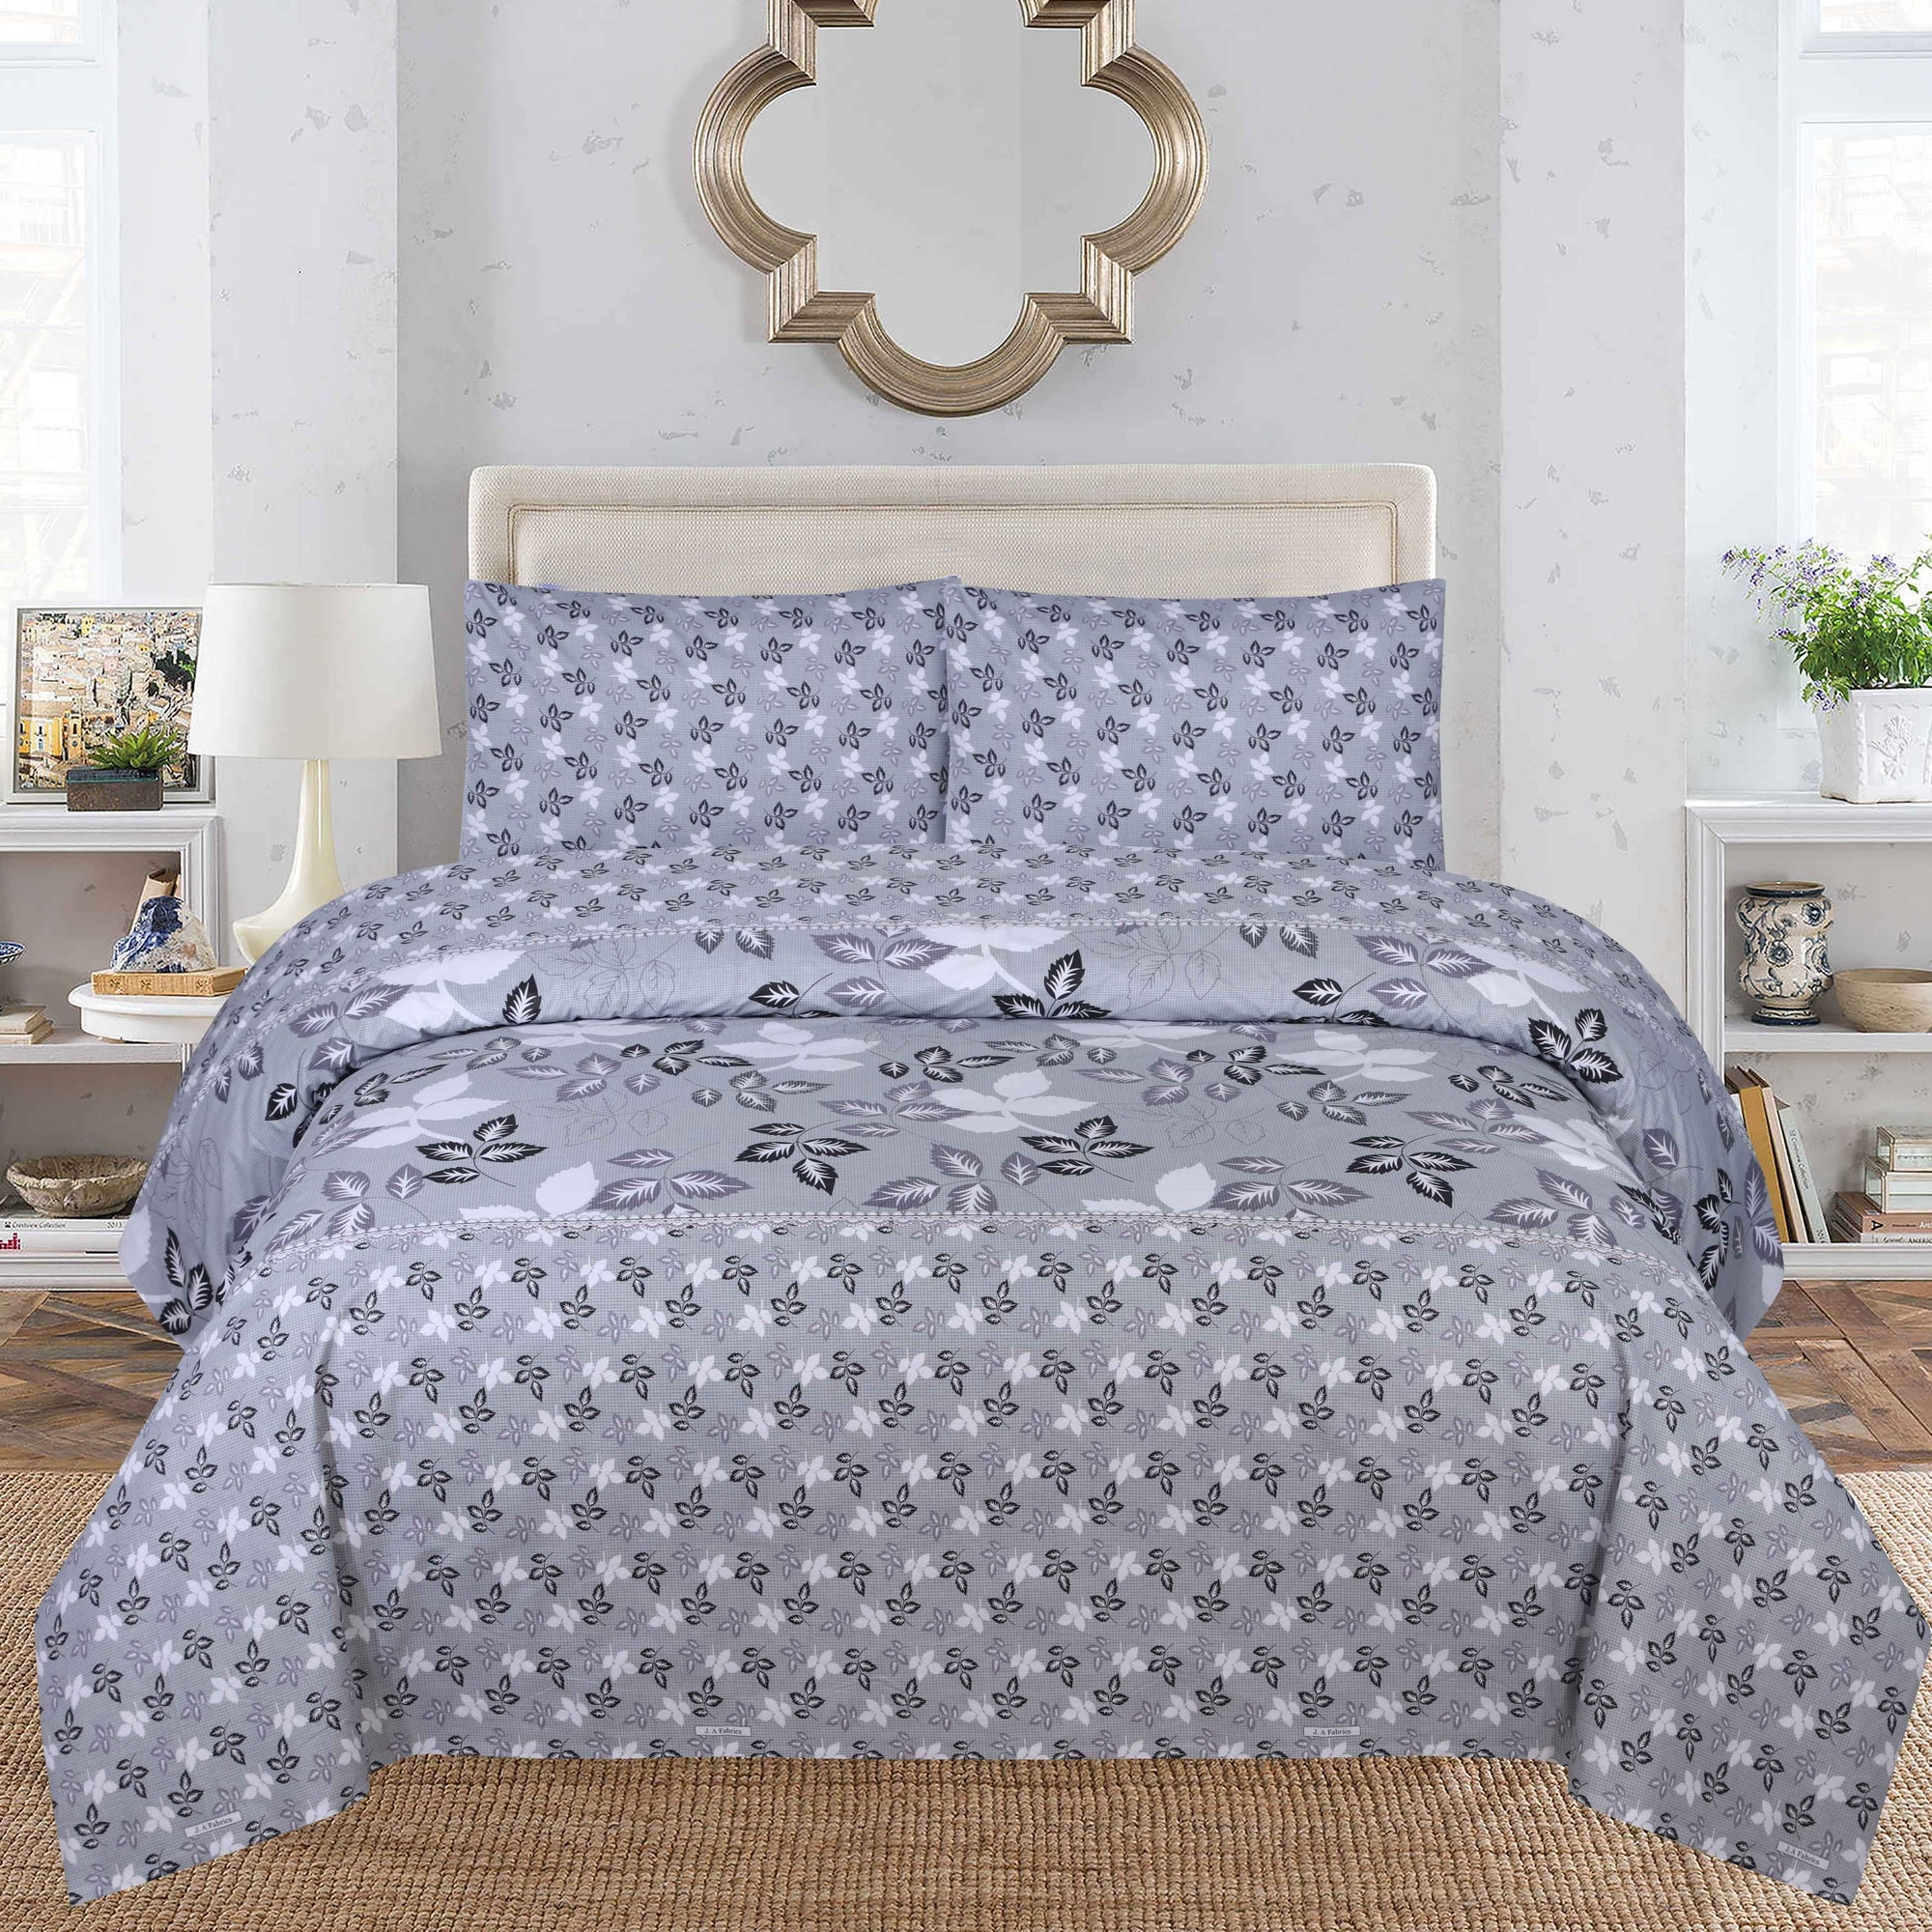 Grace D154- Cotton PC King Size Bedsheet with 2 Pillow Covers.